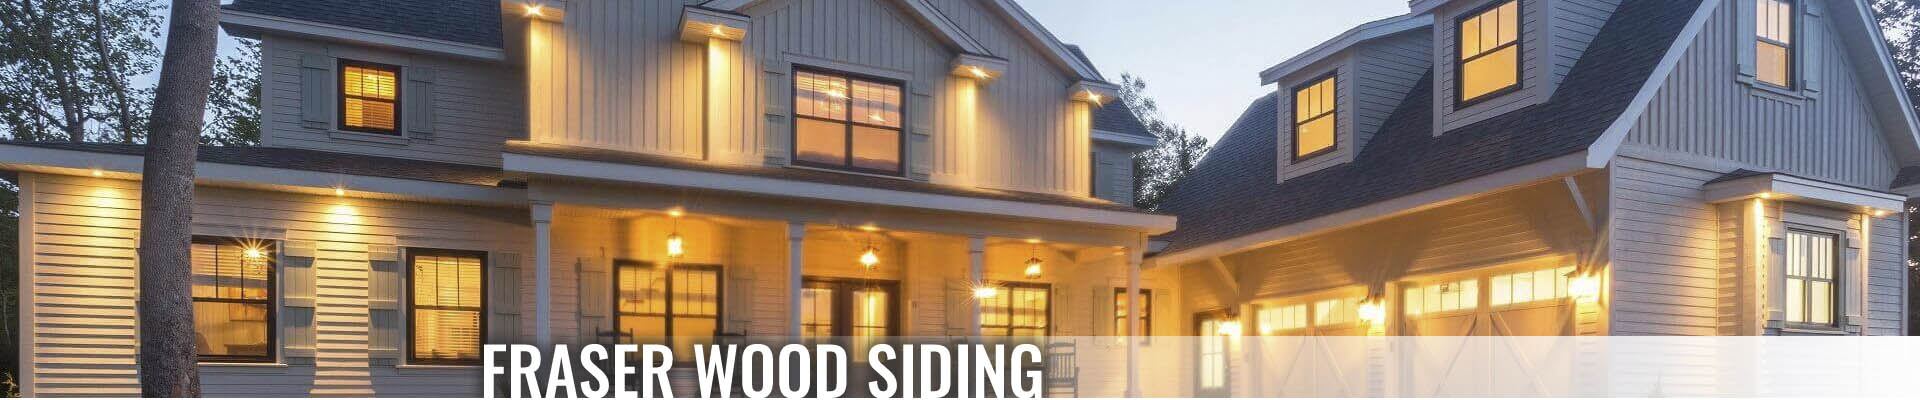 Fraser Wood Siding - Designer Shingles, Types of Siding Products at Turkstra Lumber. Visit our Designer Showcase today!